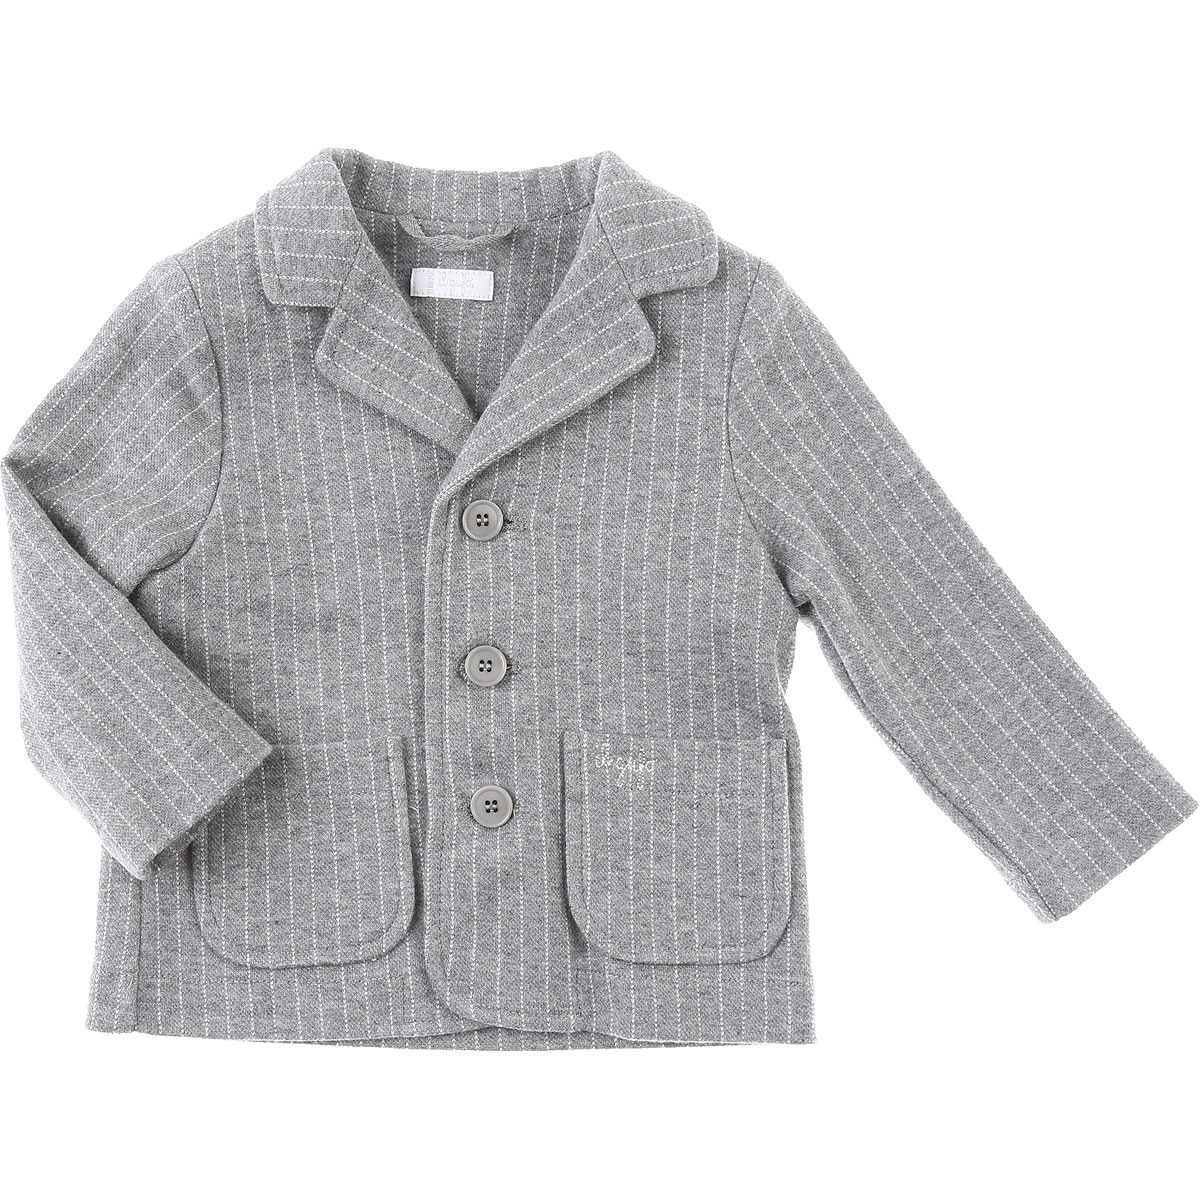 Il Gufo Baby Blazer for Boys On Sale, Light Grey, Cotton, 2019, 12 M 18M 2Y 9M